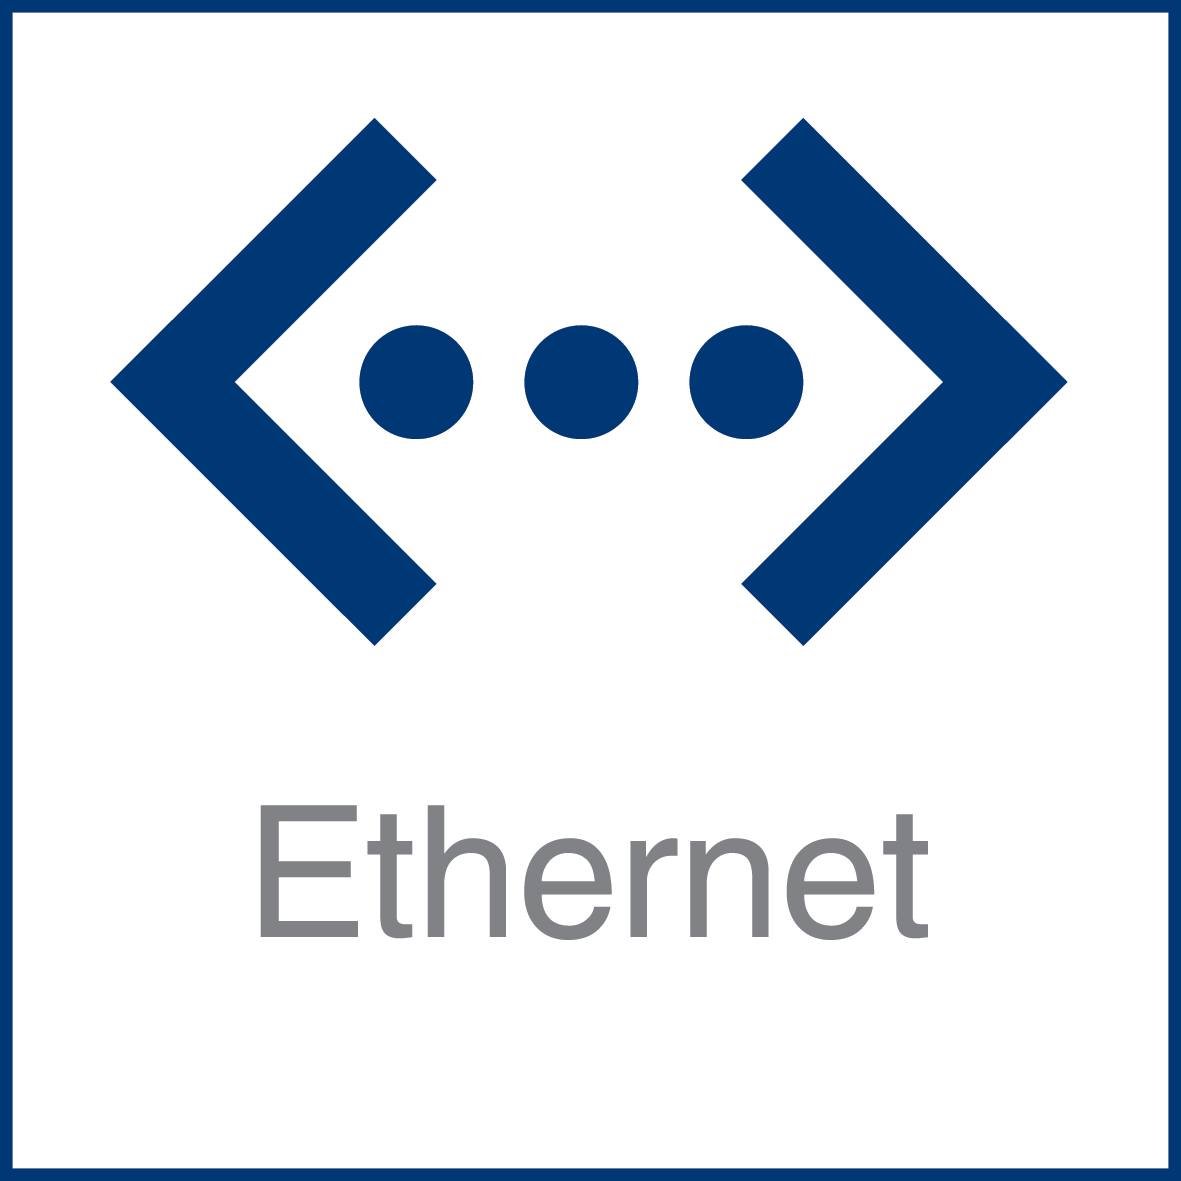 Ethernet icon